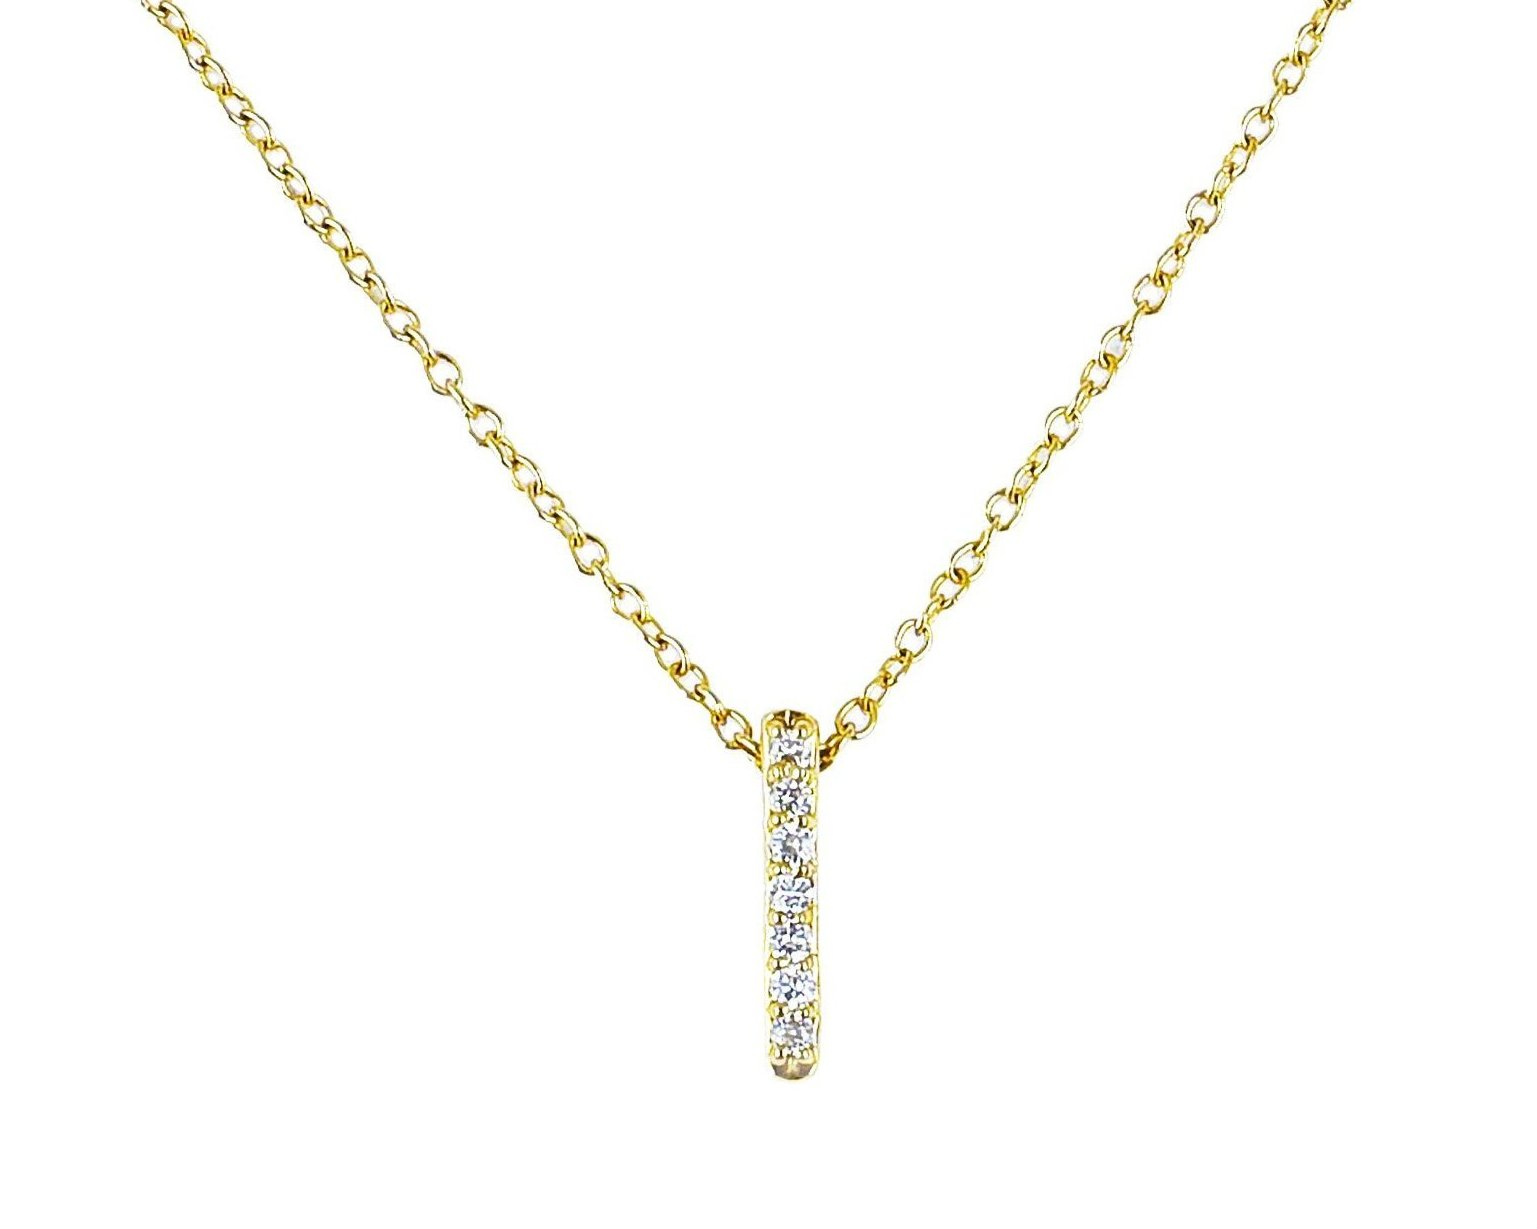 14k solid gold Vertical Diamond Bar Necklace